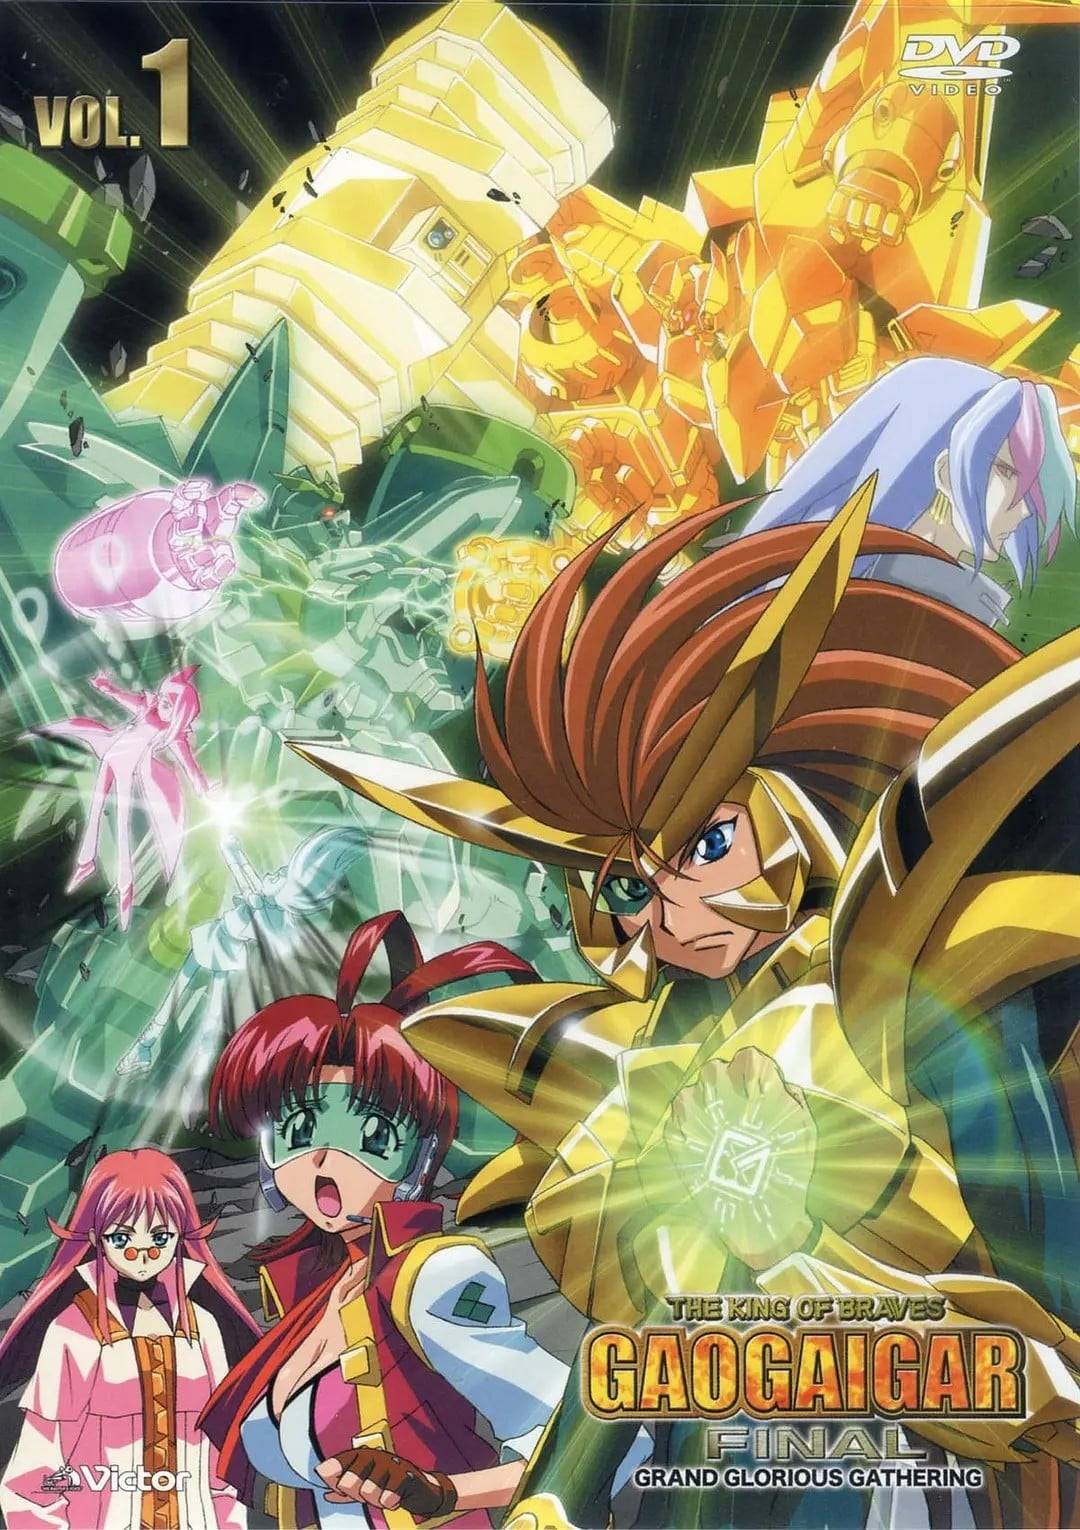 The King of Braves: GaoGaiGar (1997)